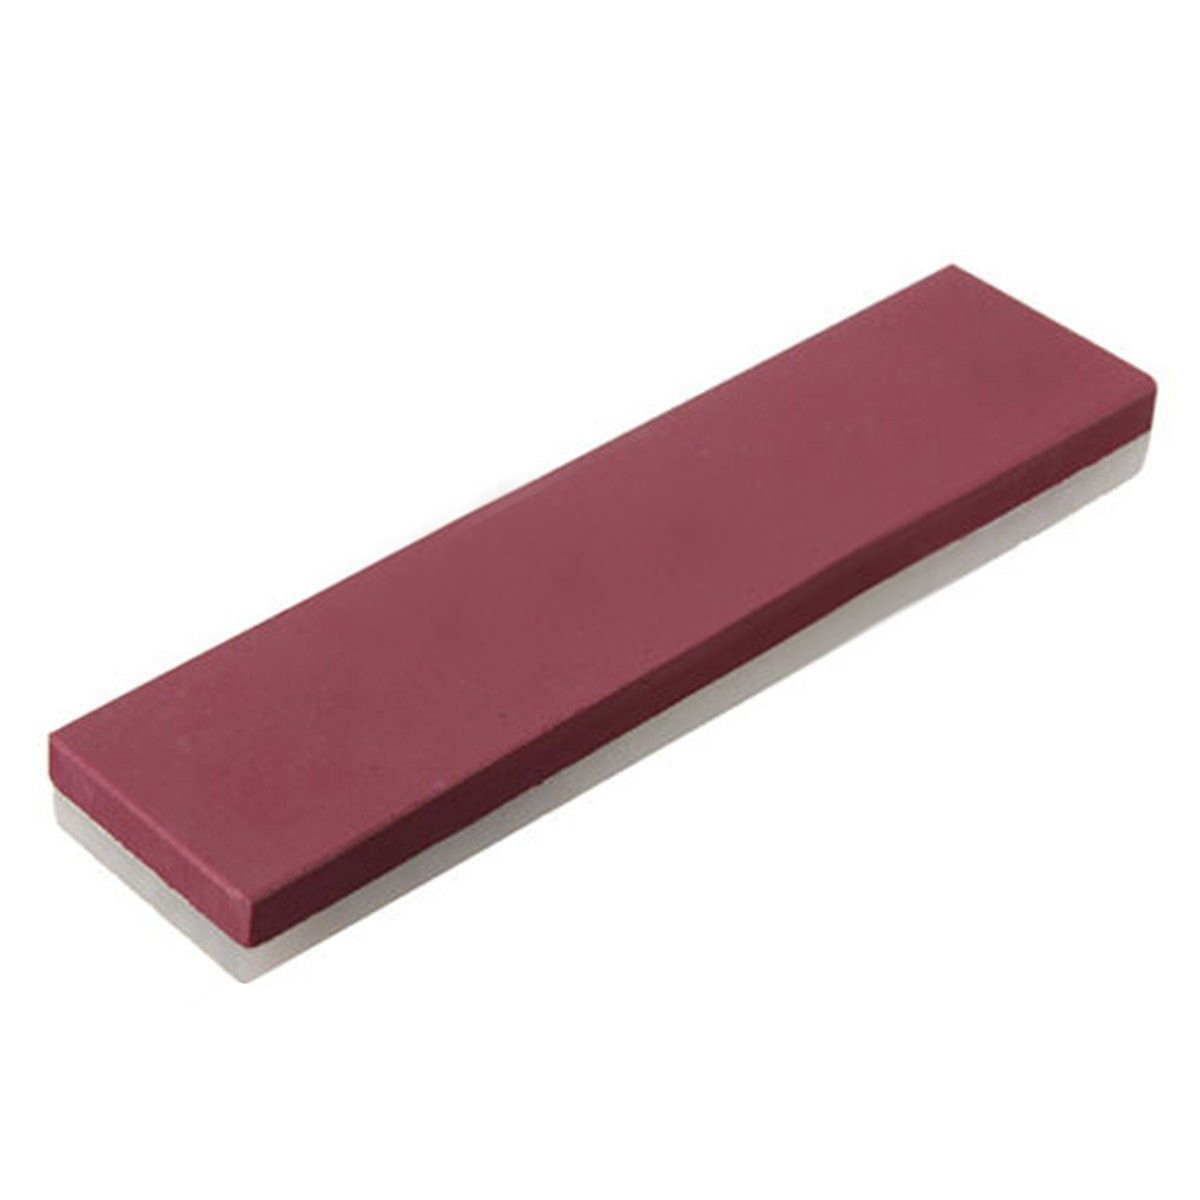 Hot Sale 10000# 3000# Grit Knife Razor Sharpener Stone Whetstone Polishing Tool Two Sides Red+White